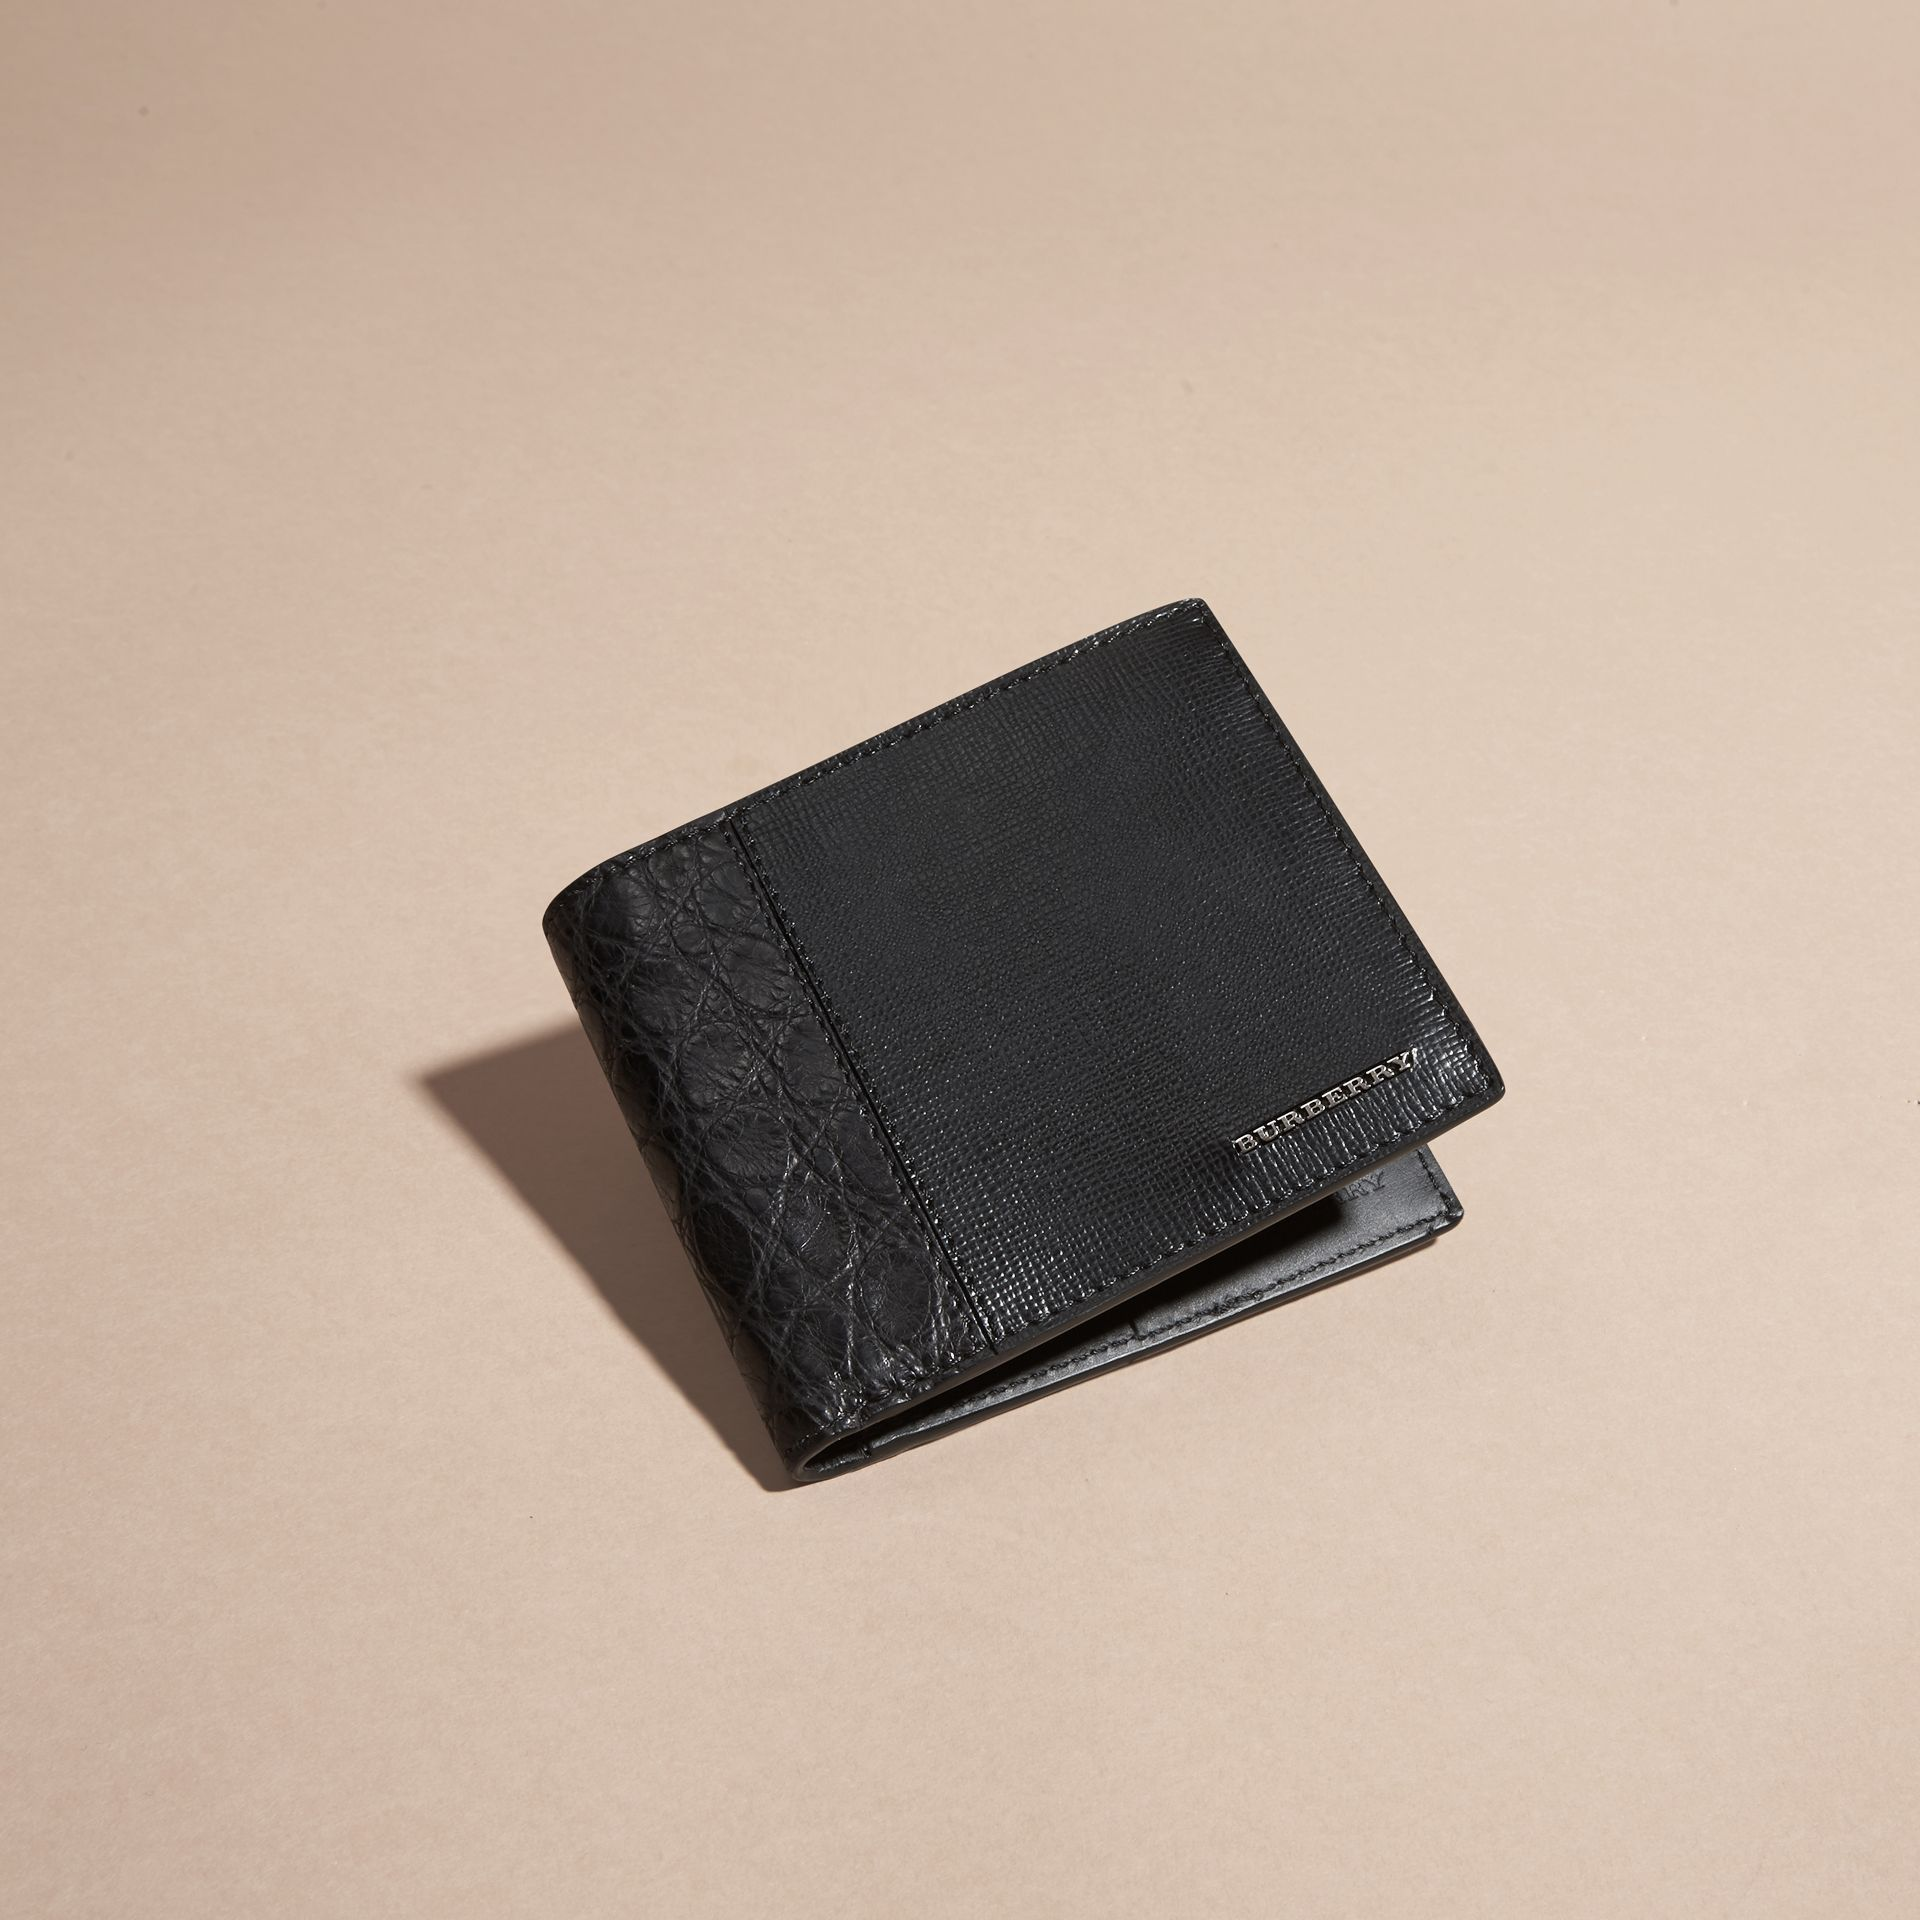 Leather and Alligator International Bifold Wallet in Black - Men | Burberry Hong Kong - gallery image 3